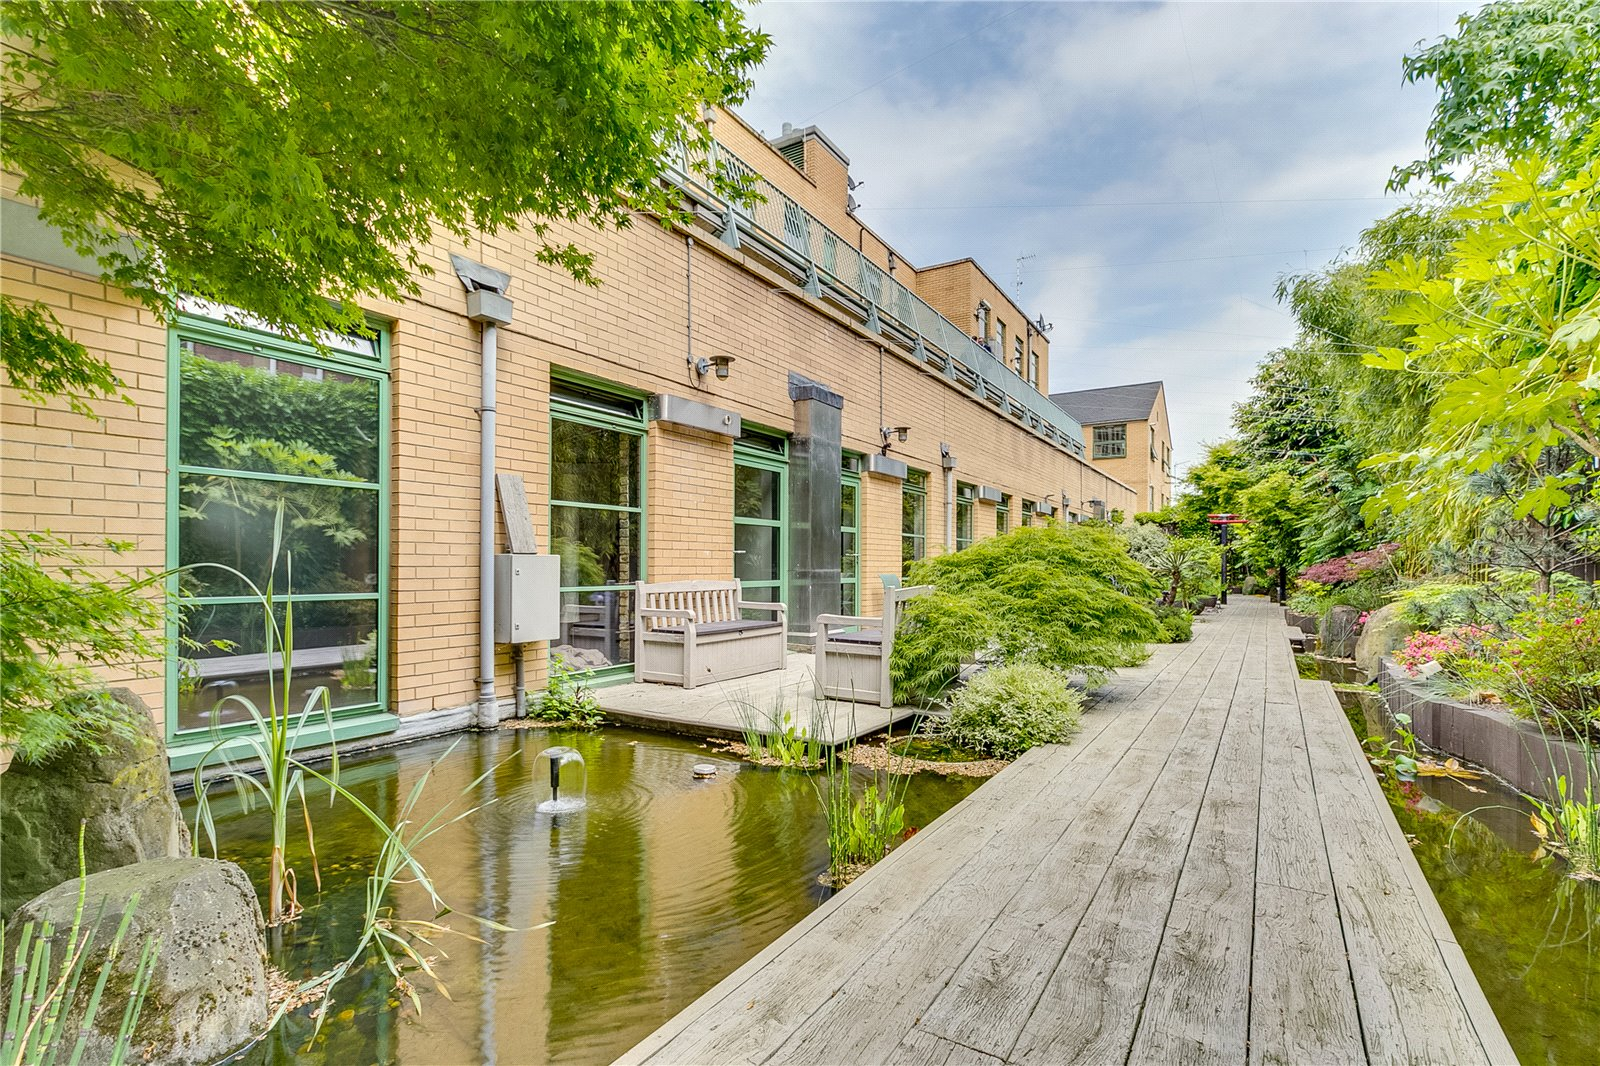 The flat is one of six homes accessed through Japanese water gardens, each with a private bridge to the front door.